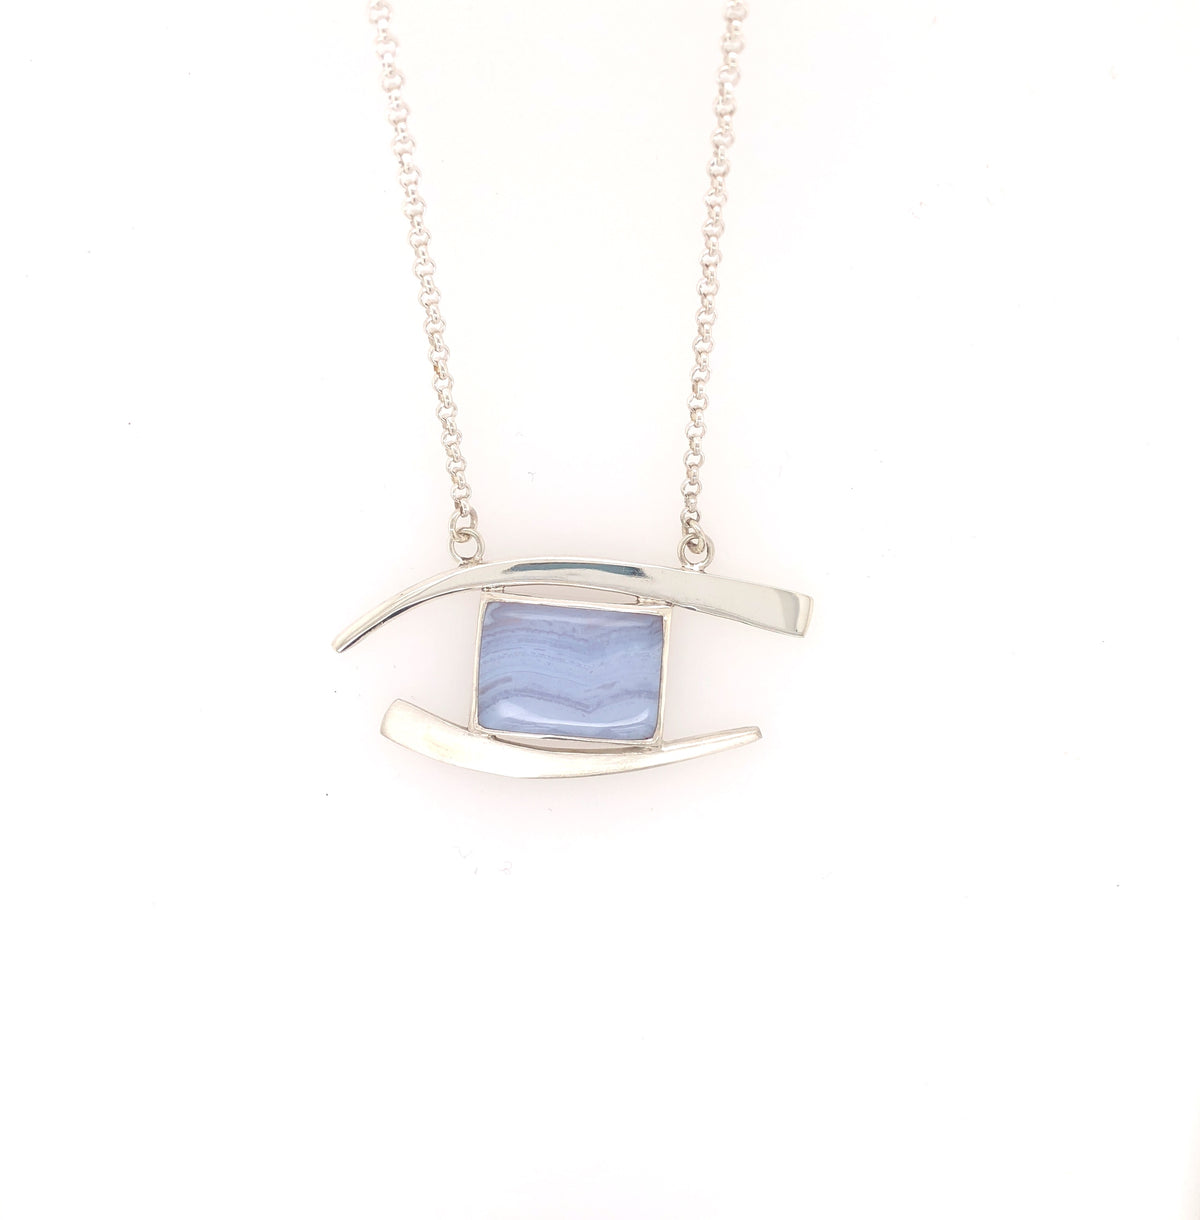 Blue Lace Agate Forged Pendant